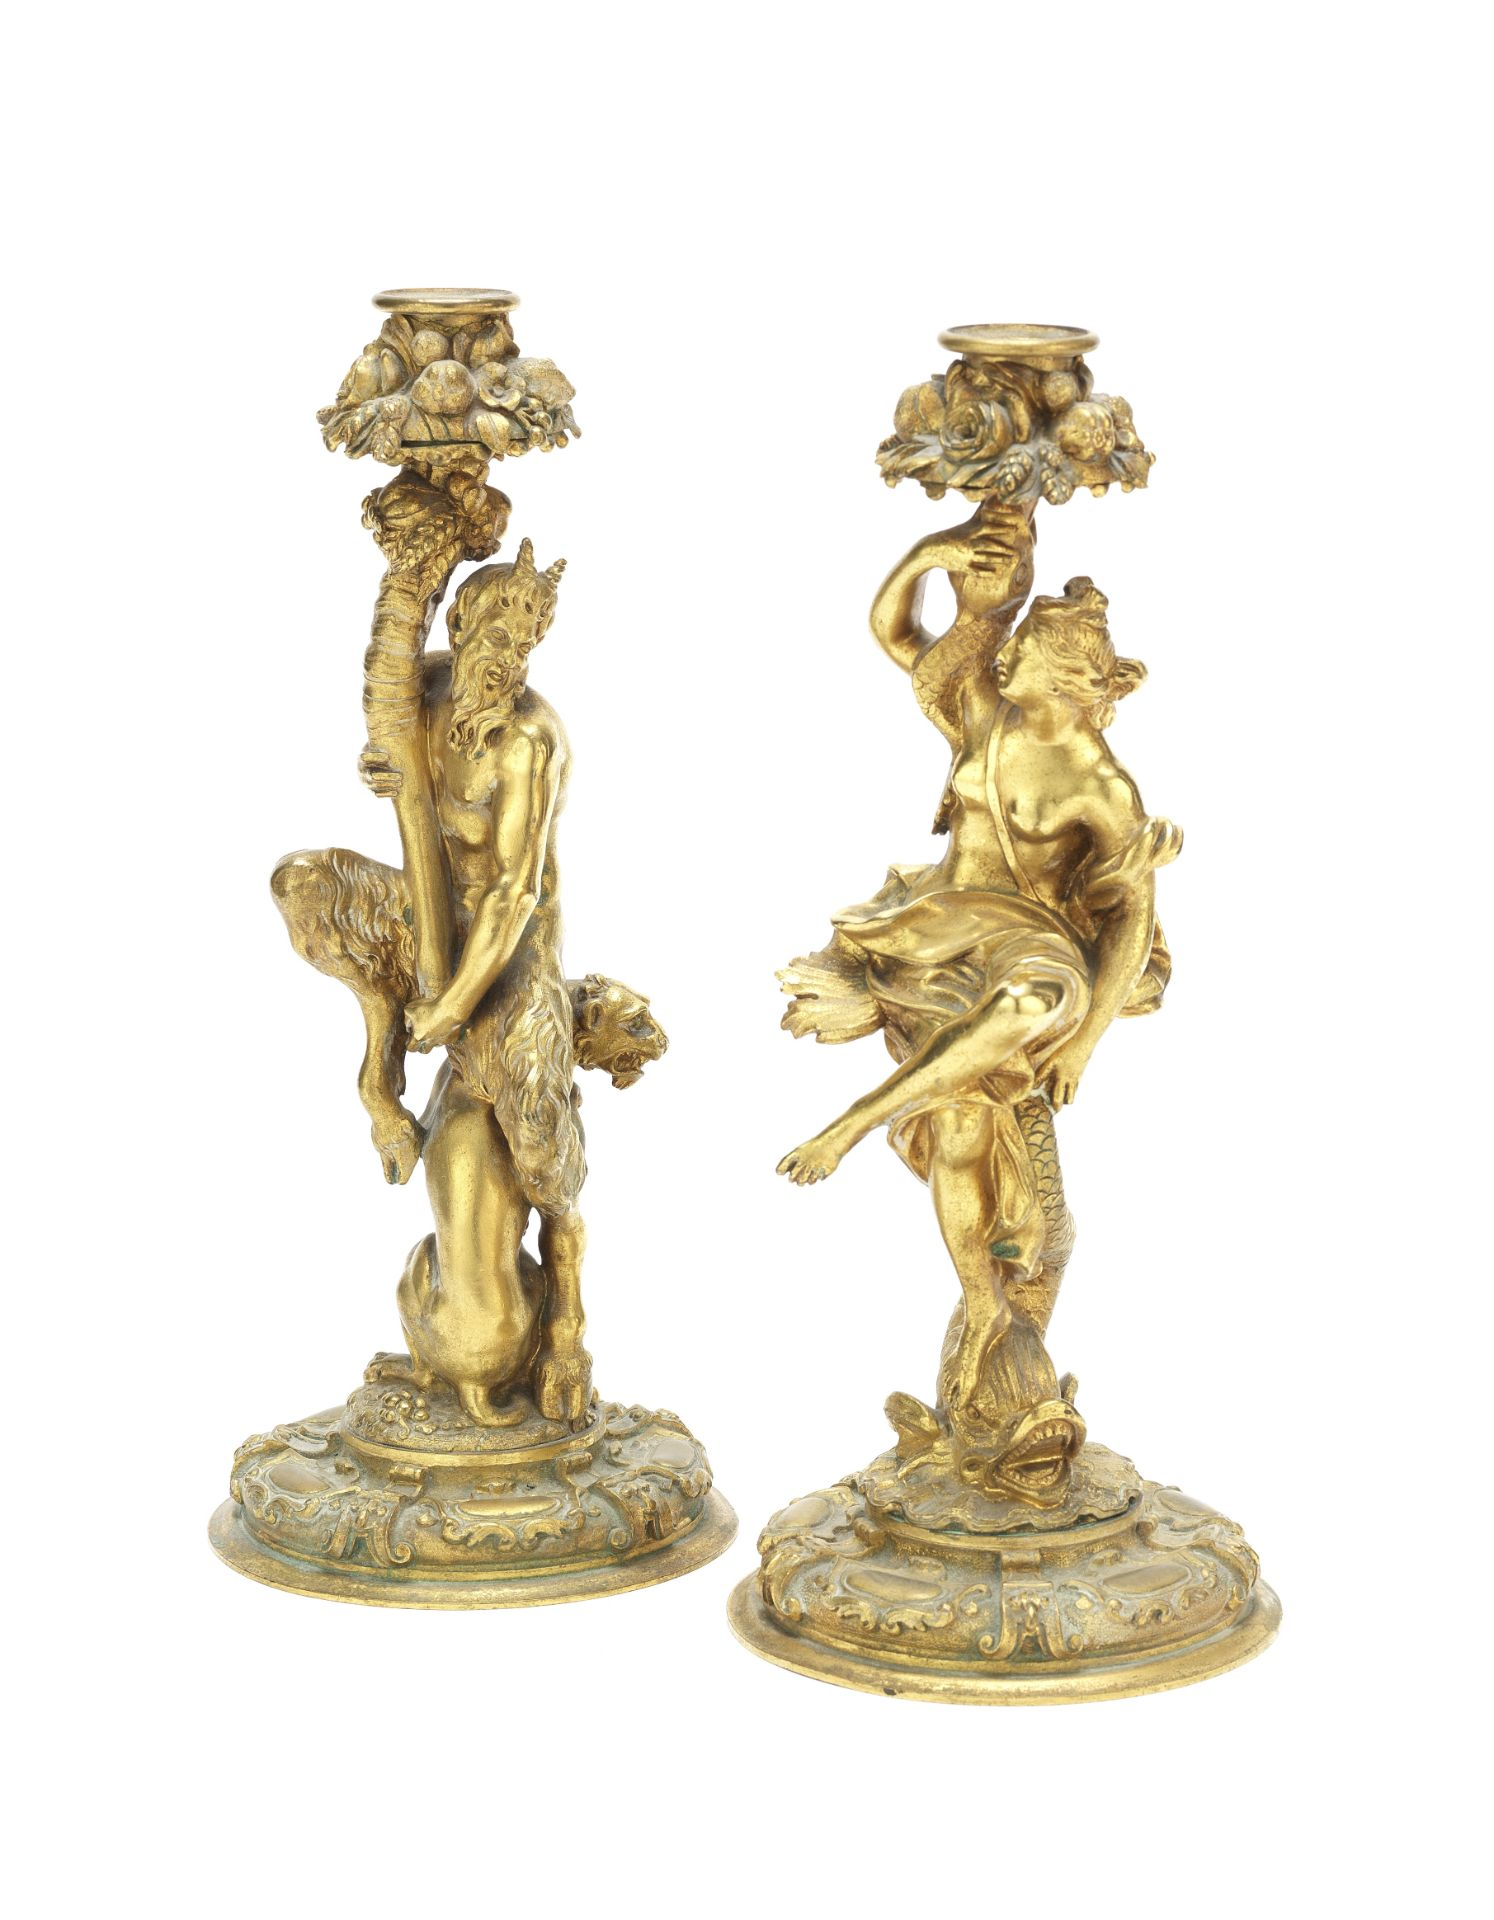 Los 56 - A pair of French 19th century gilt bronze figural candlesticks (2)